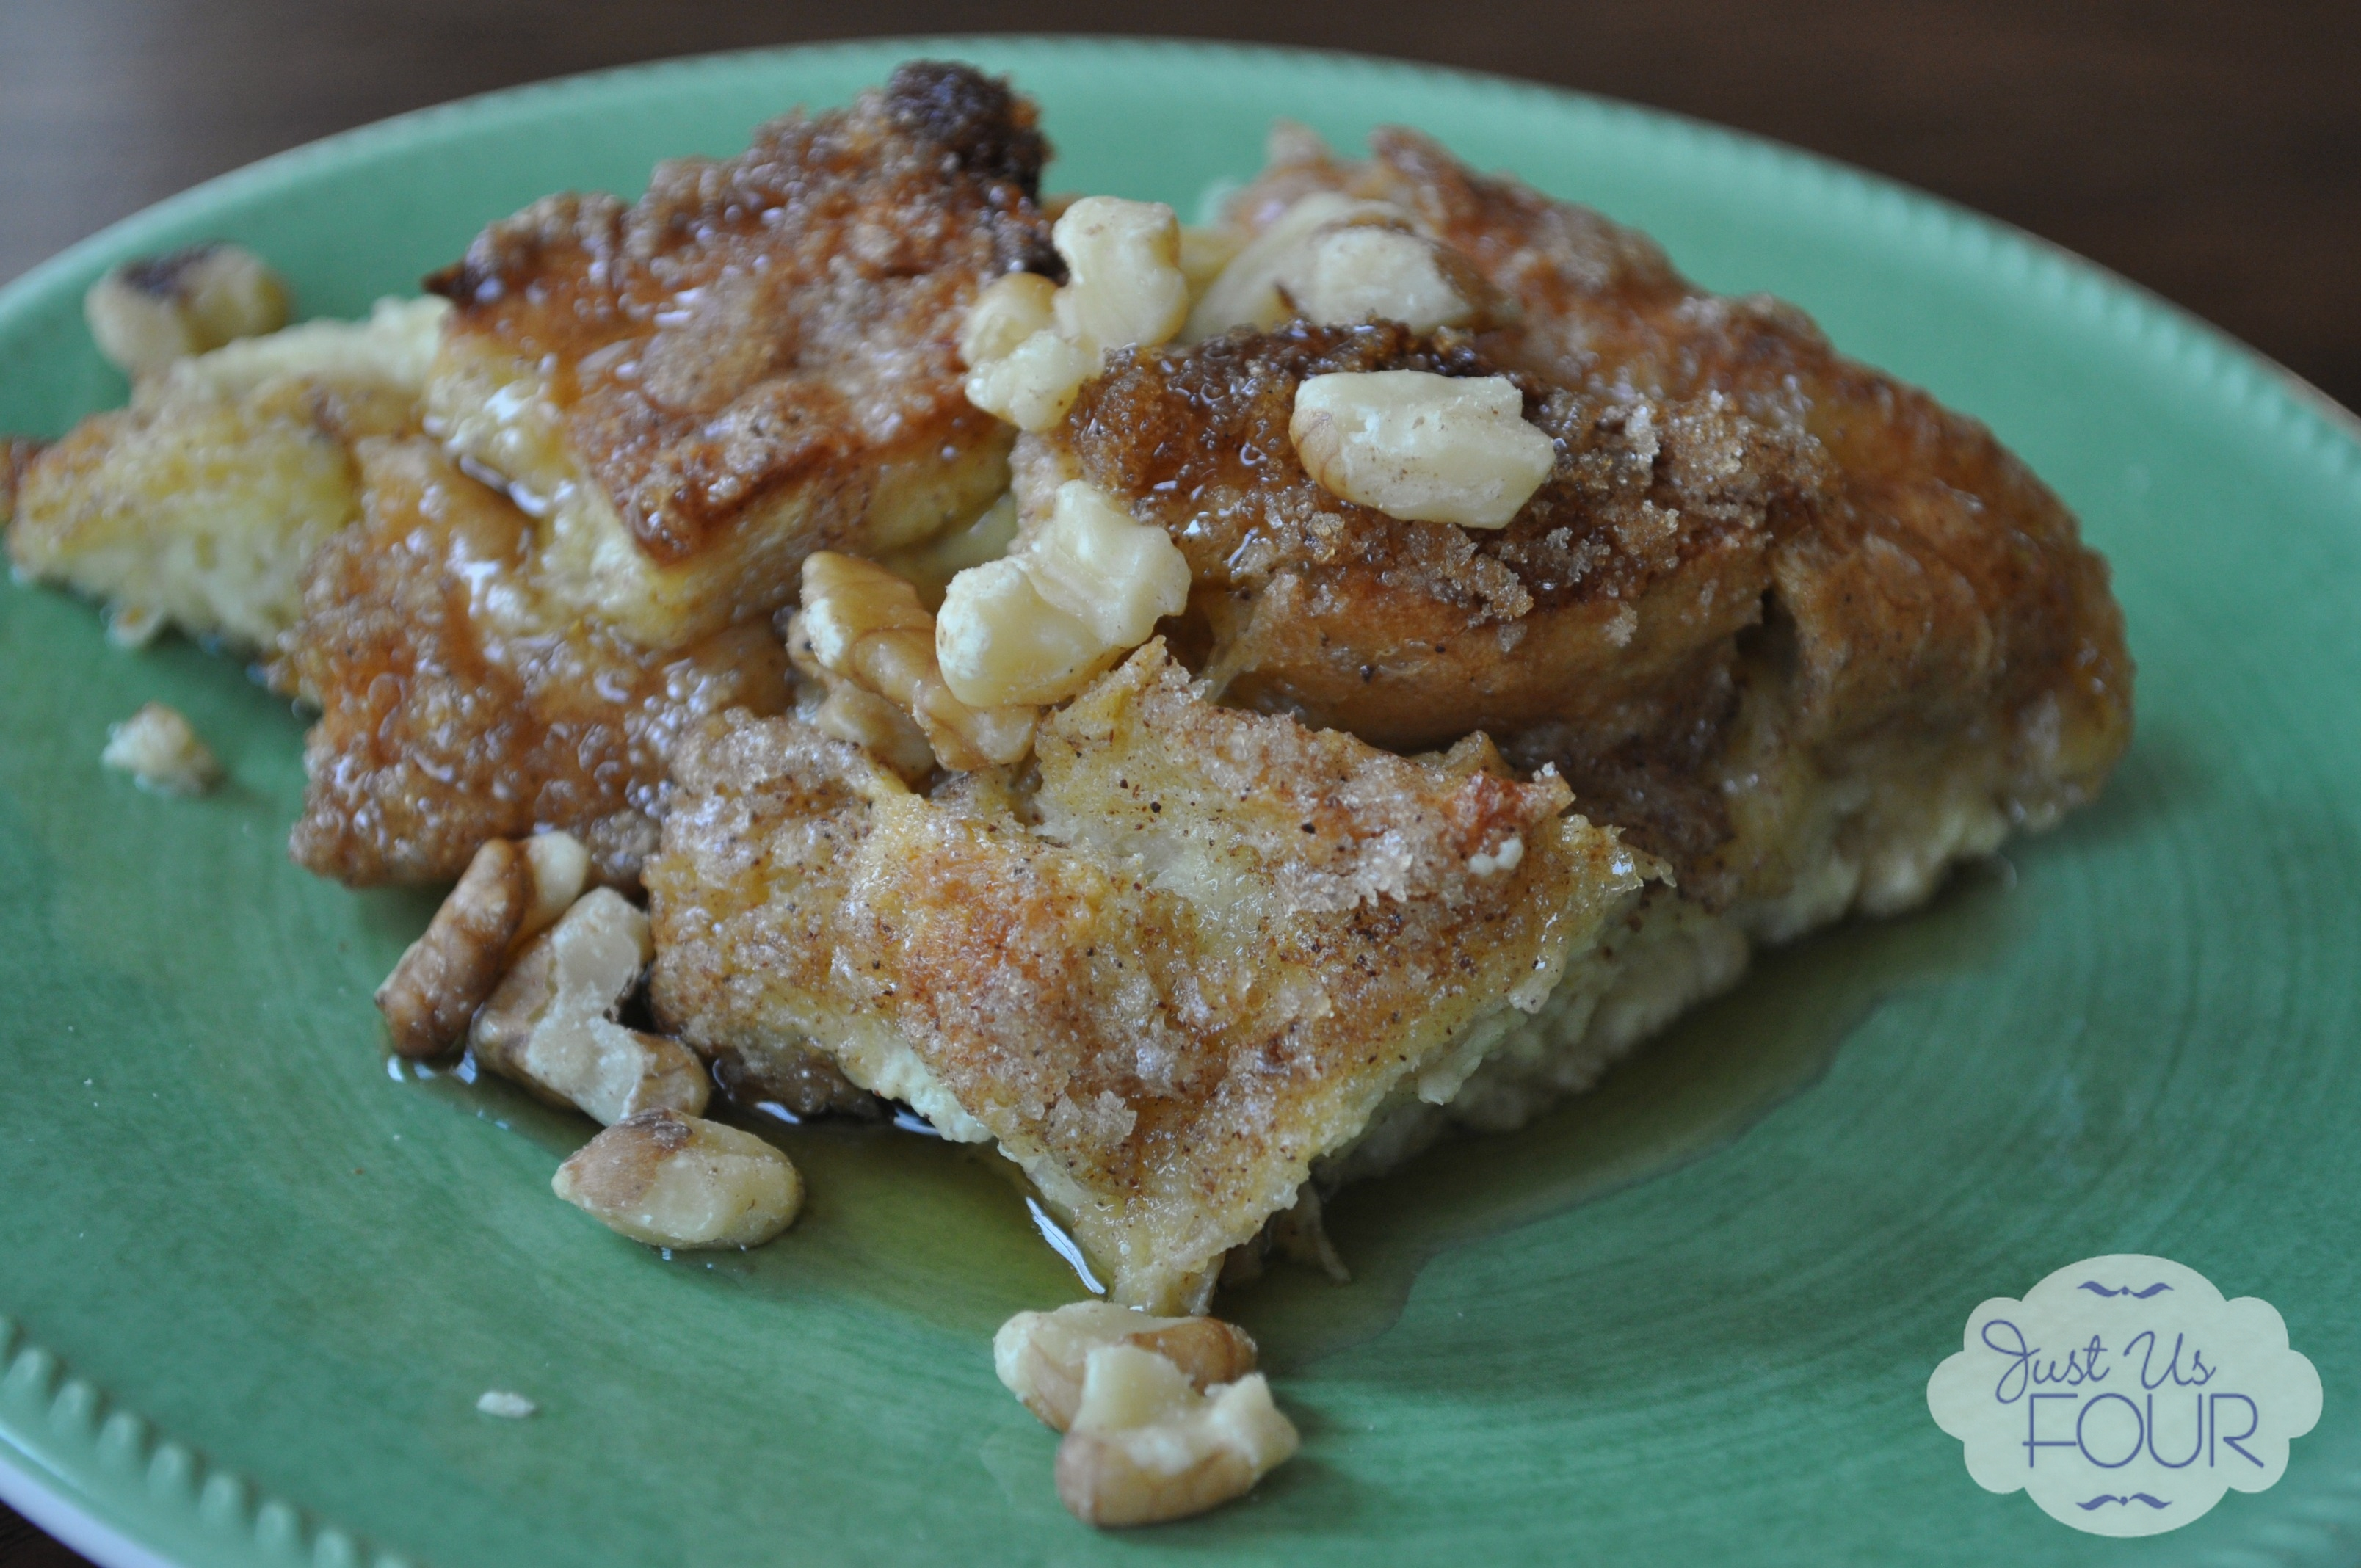 Pumpkin Pie French Toast Casserole Recipe - Just Us Four